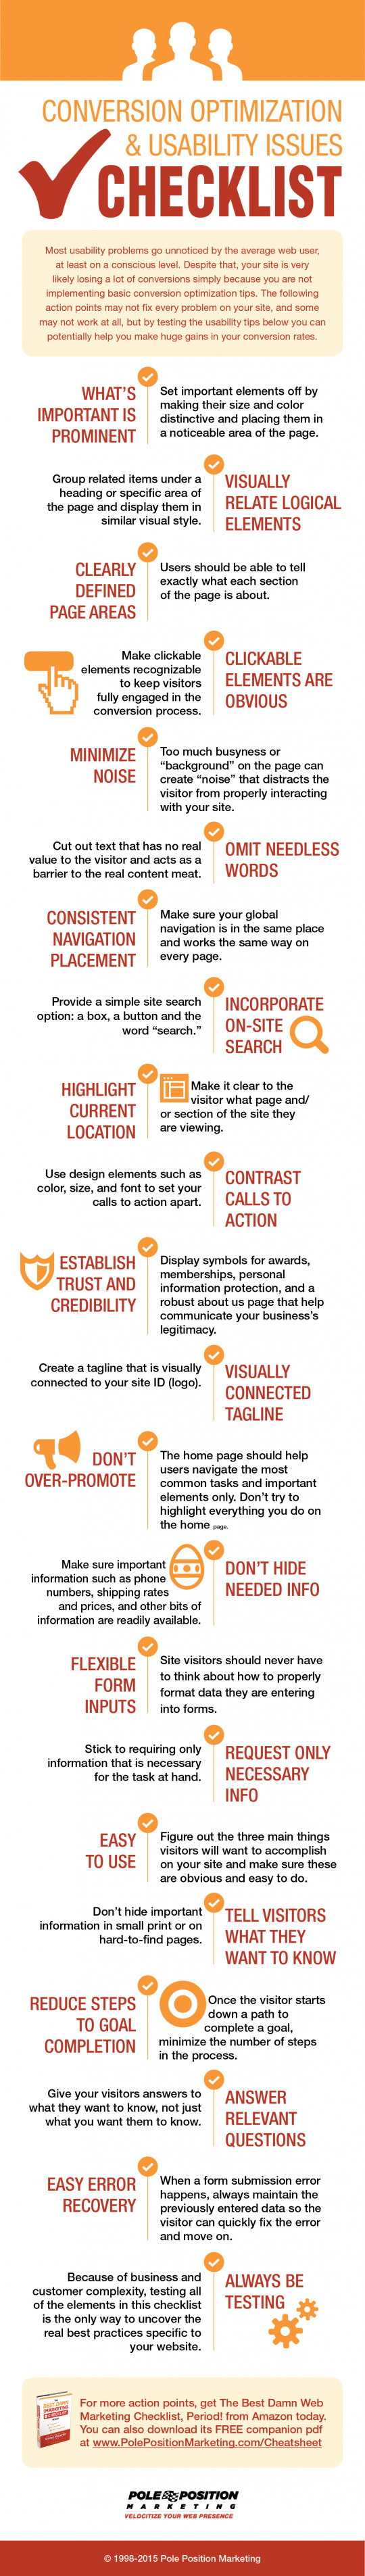 Website Conversion and Usability Checklist